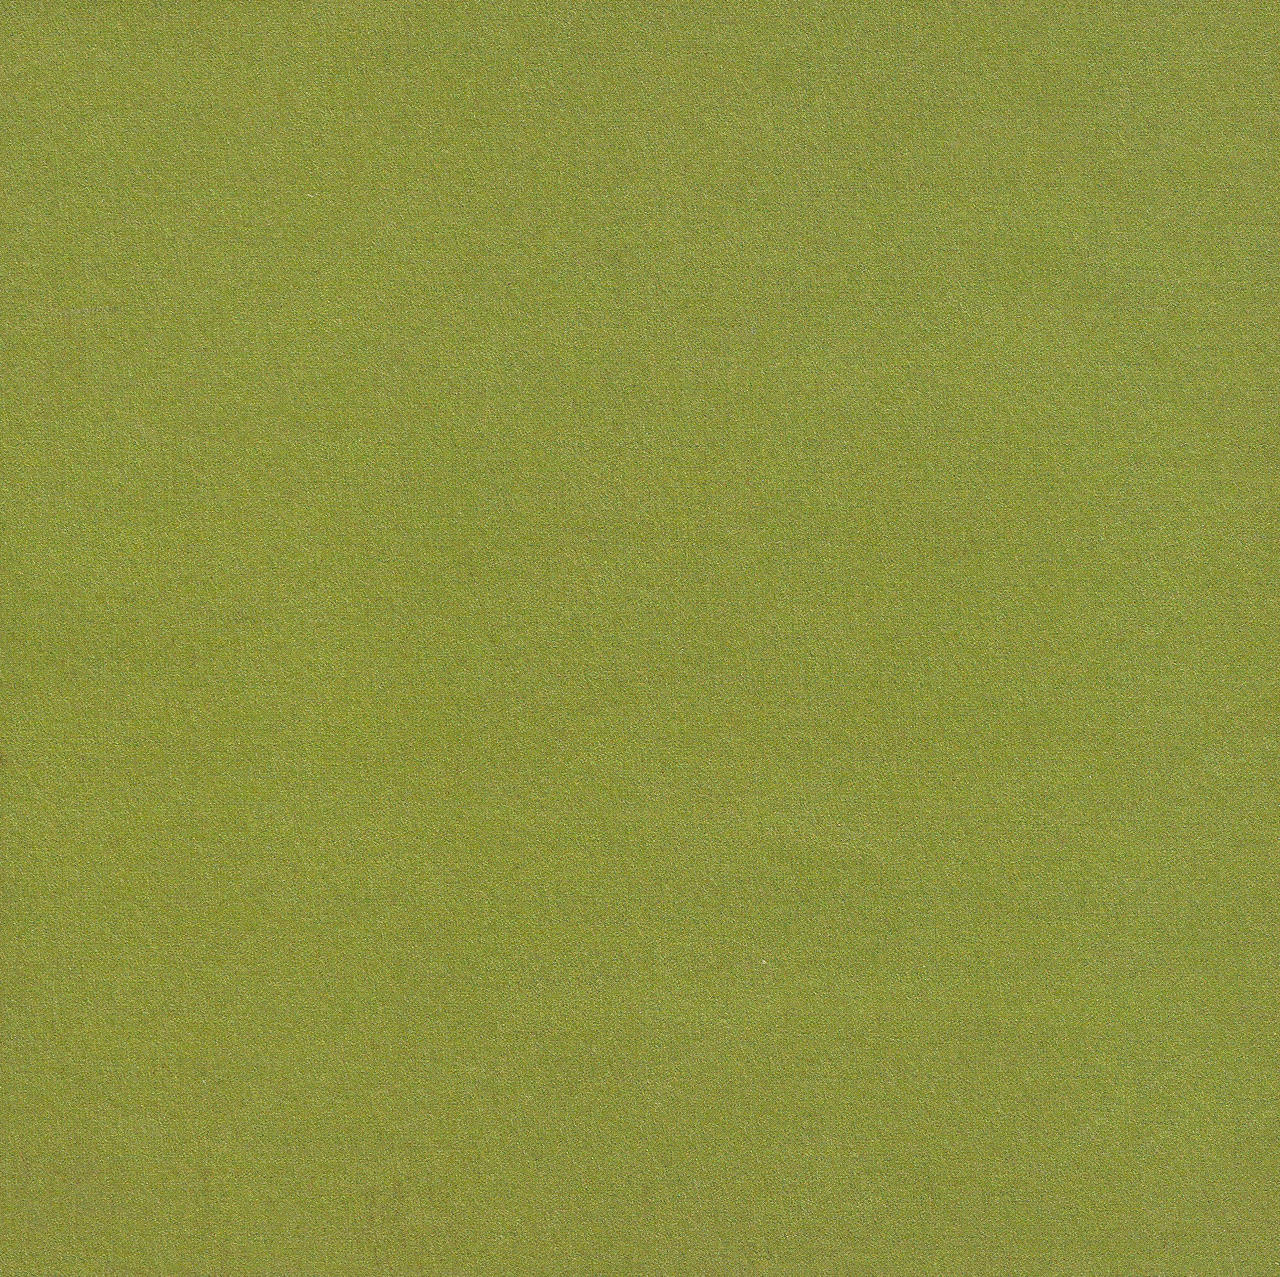 Olive Green Paper Background by Enchantedgal-Stock